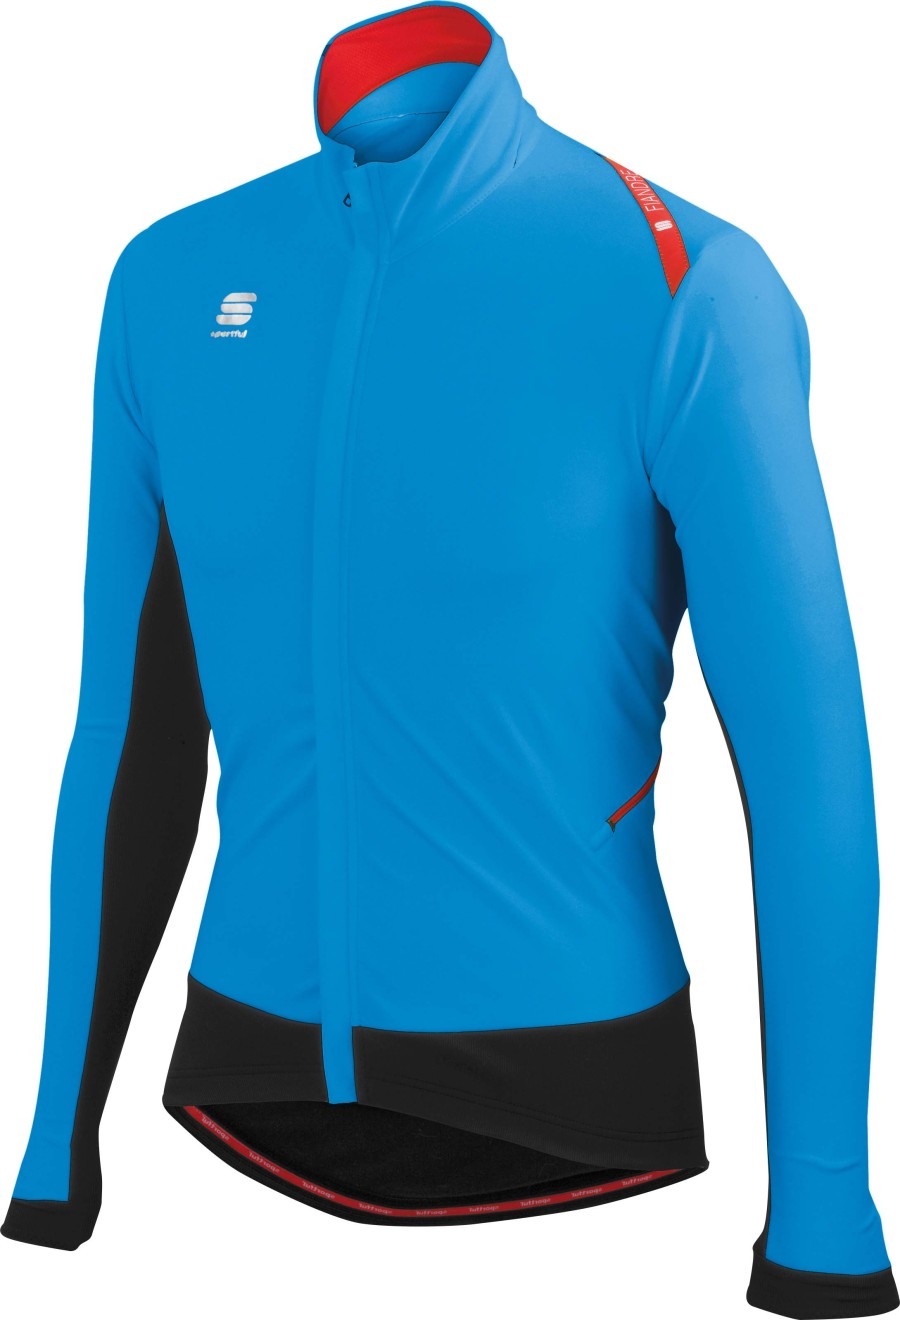 Fiandre Light Wind Jersey